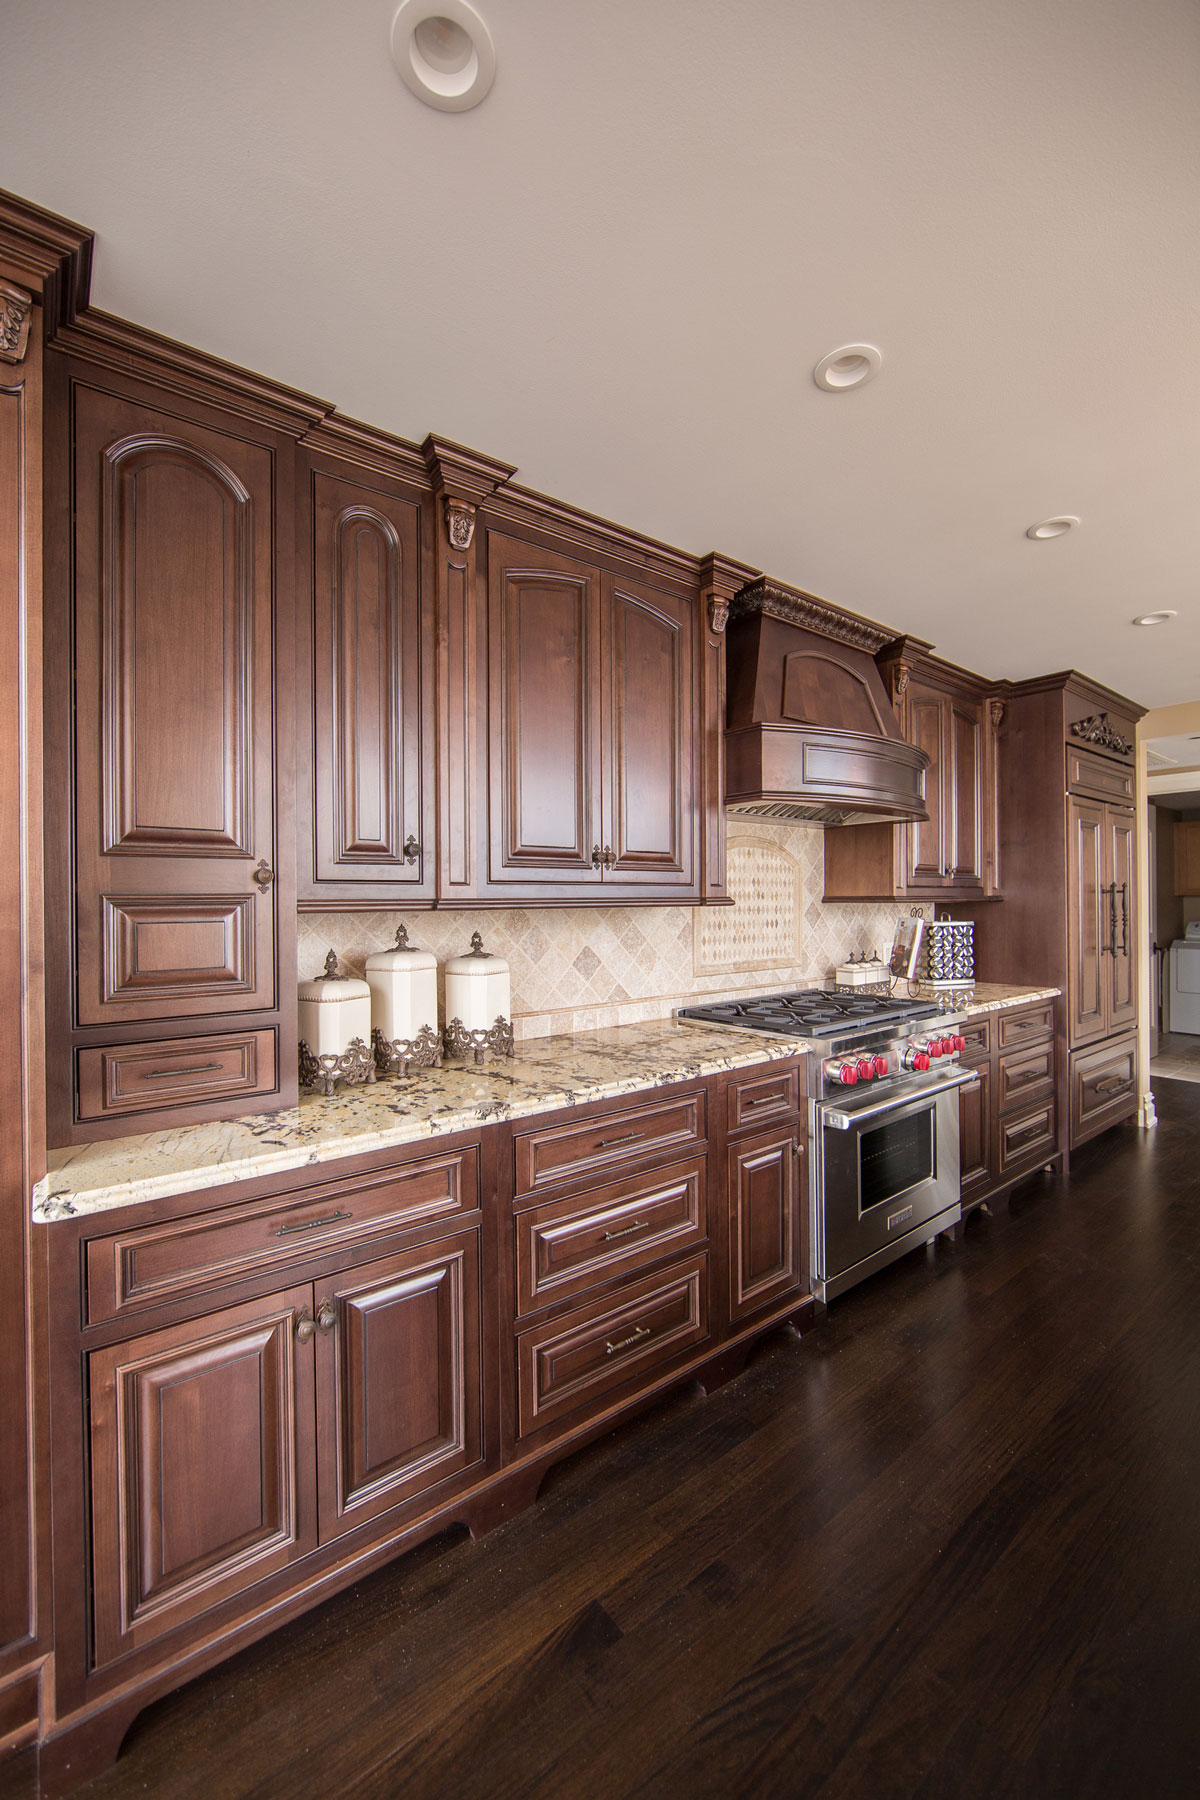 kitchen and bathroom remodeling kitchen remodeling chicago Chicago Condo Custom Kitchen Remodel